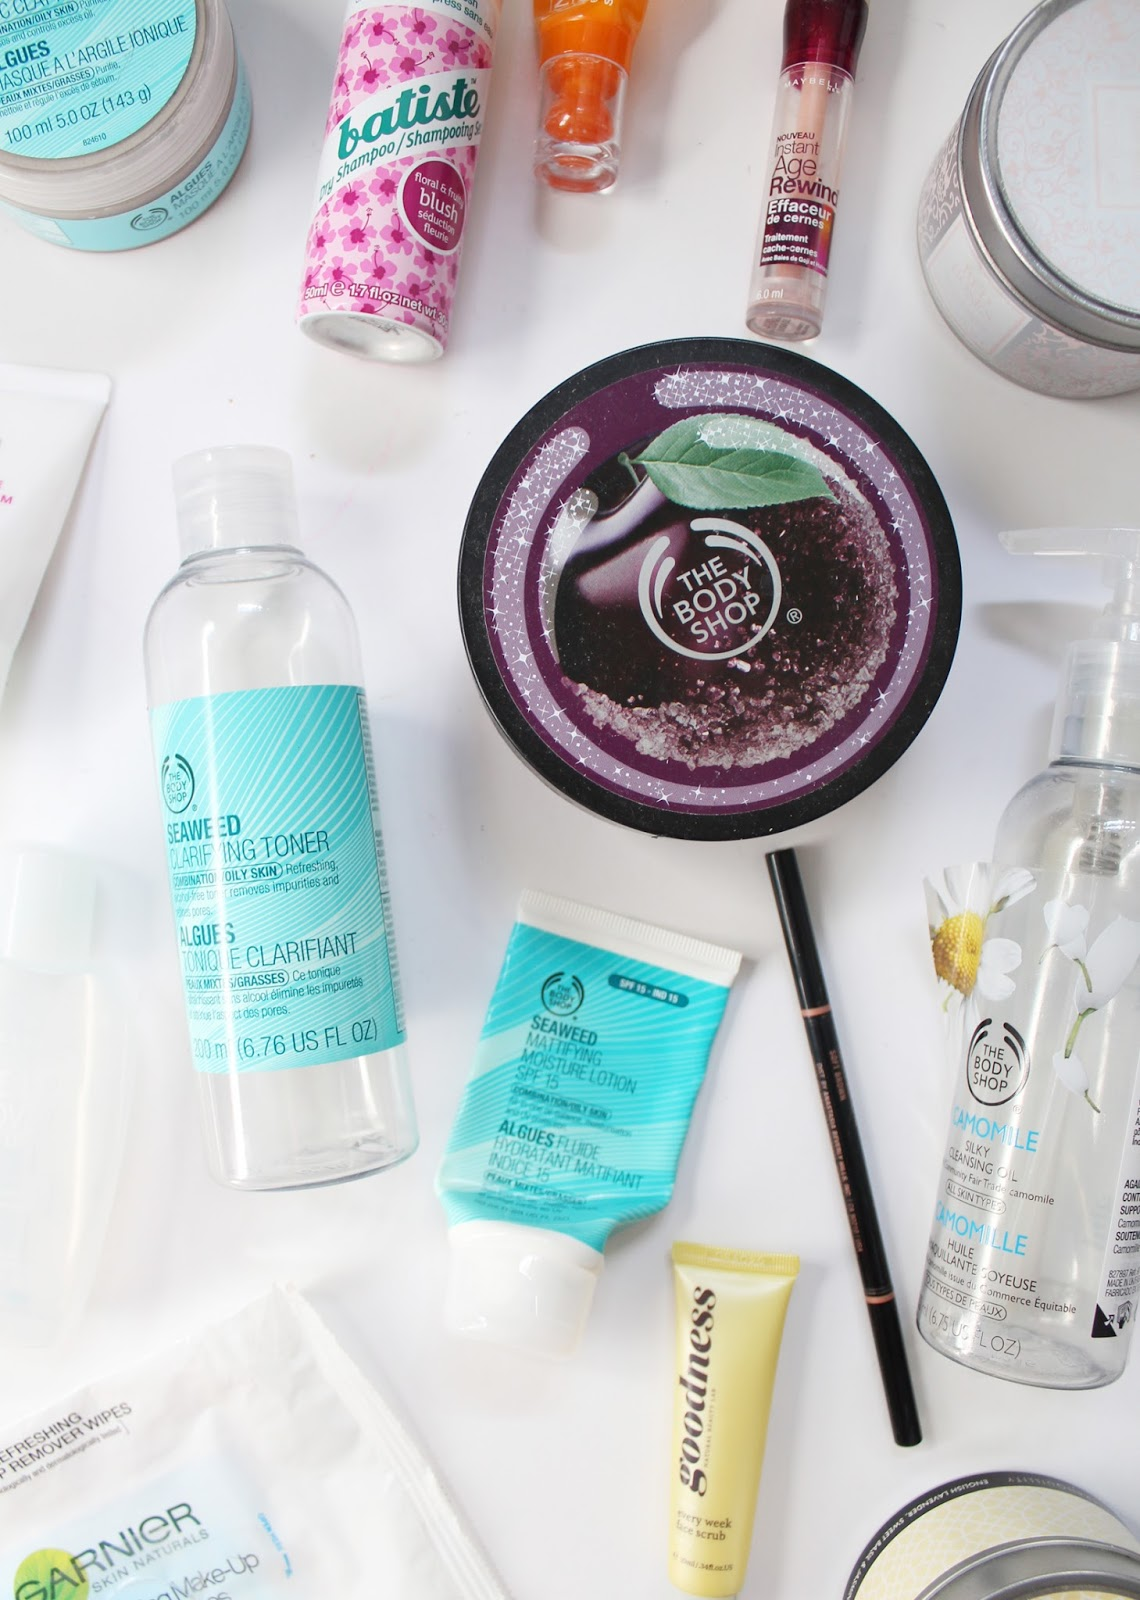 EMPTIES | March '16 - Product Reviews - The Body Shop, Clinique, Maybelline, Batiste, Garnier, Za, Goodness Products, Anastasia Beverly Hills - CassandraMyee